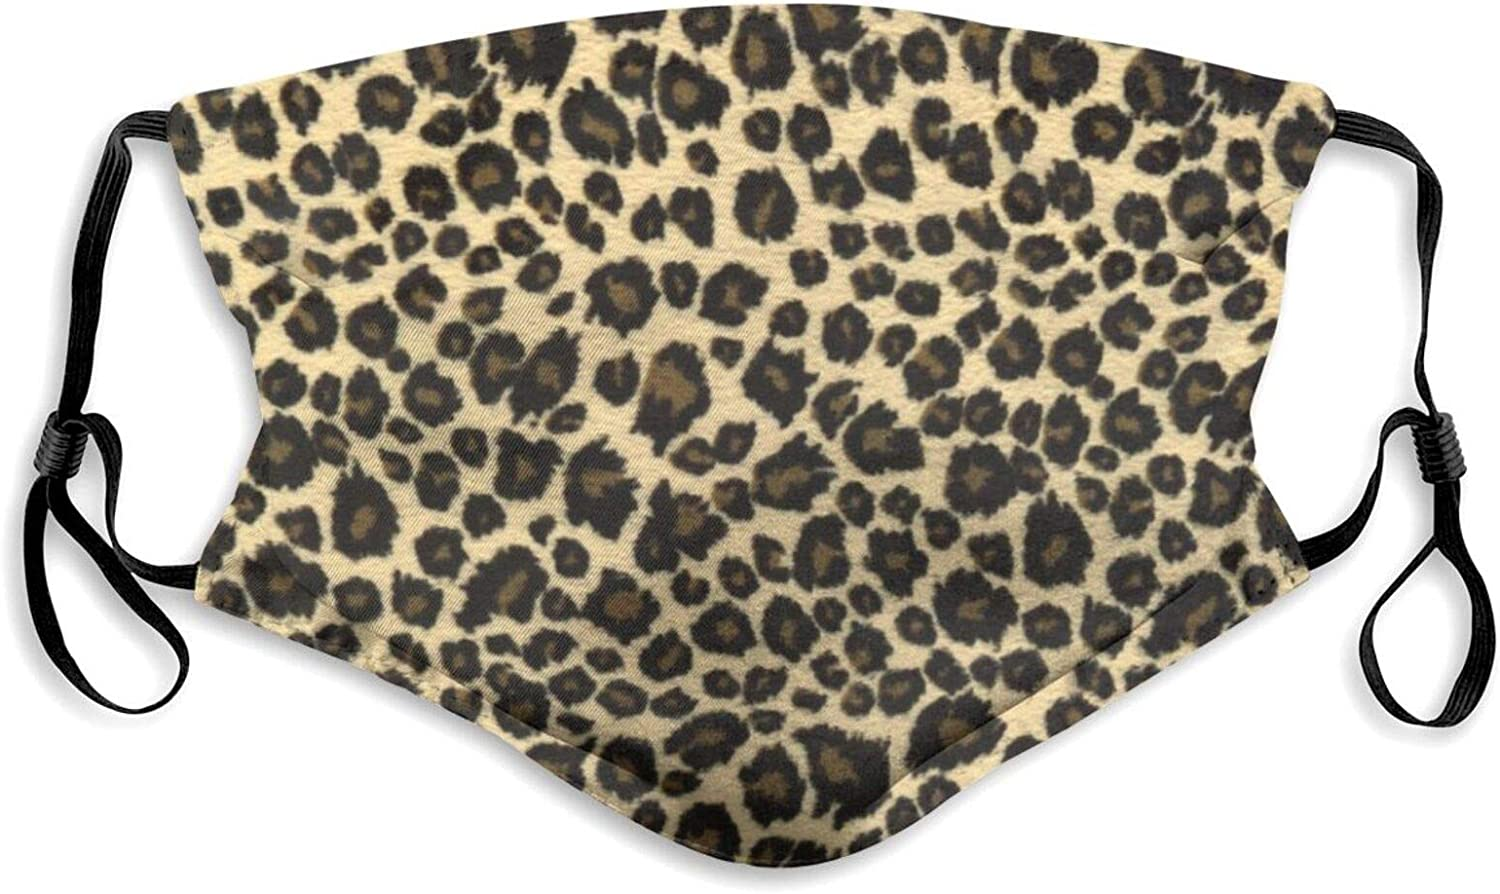 Leopard Max Nippon regular agency 47% OFF Face Mask Washable for Women with Adjustable Balaclavas